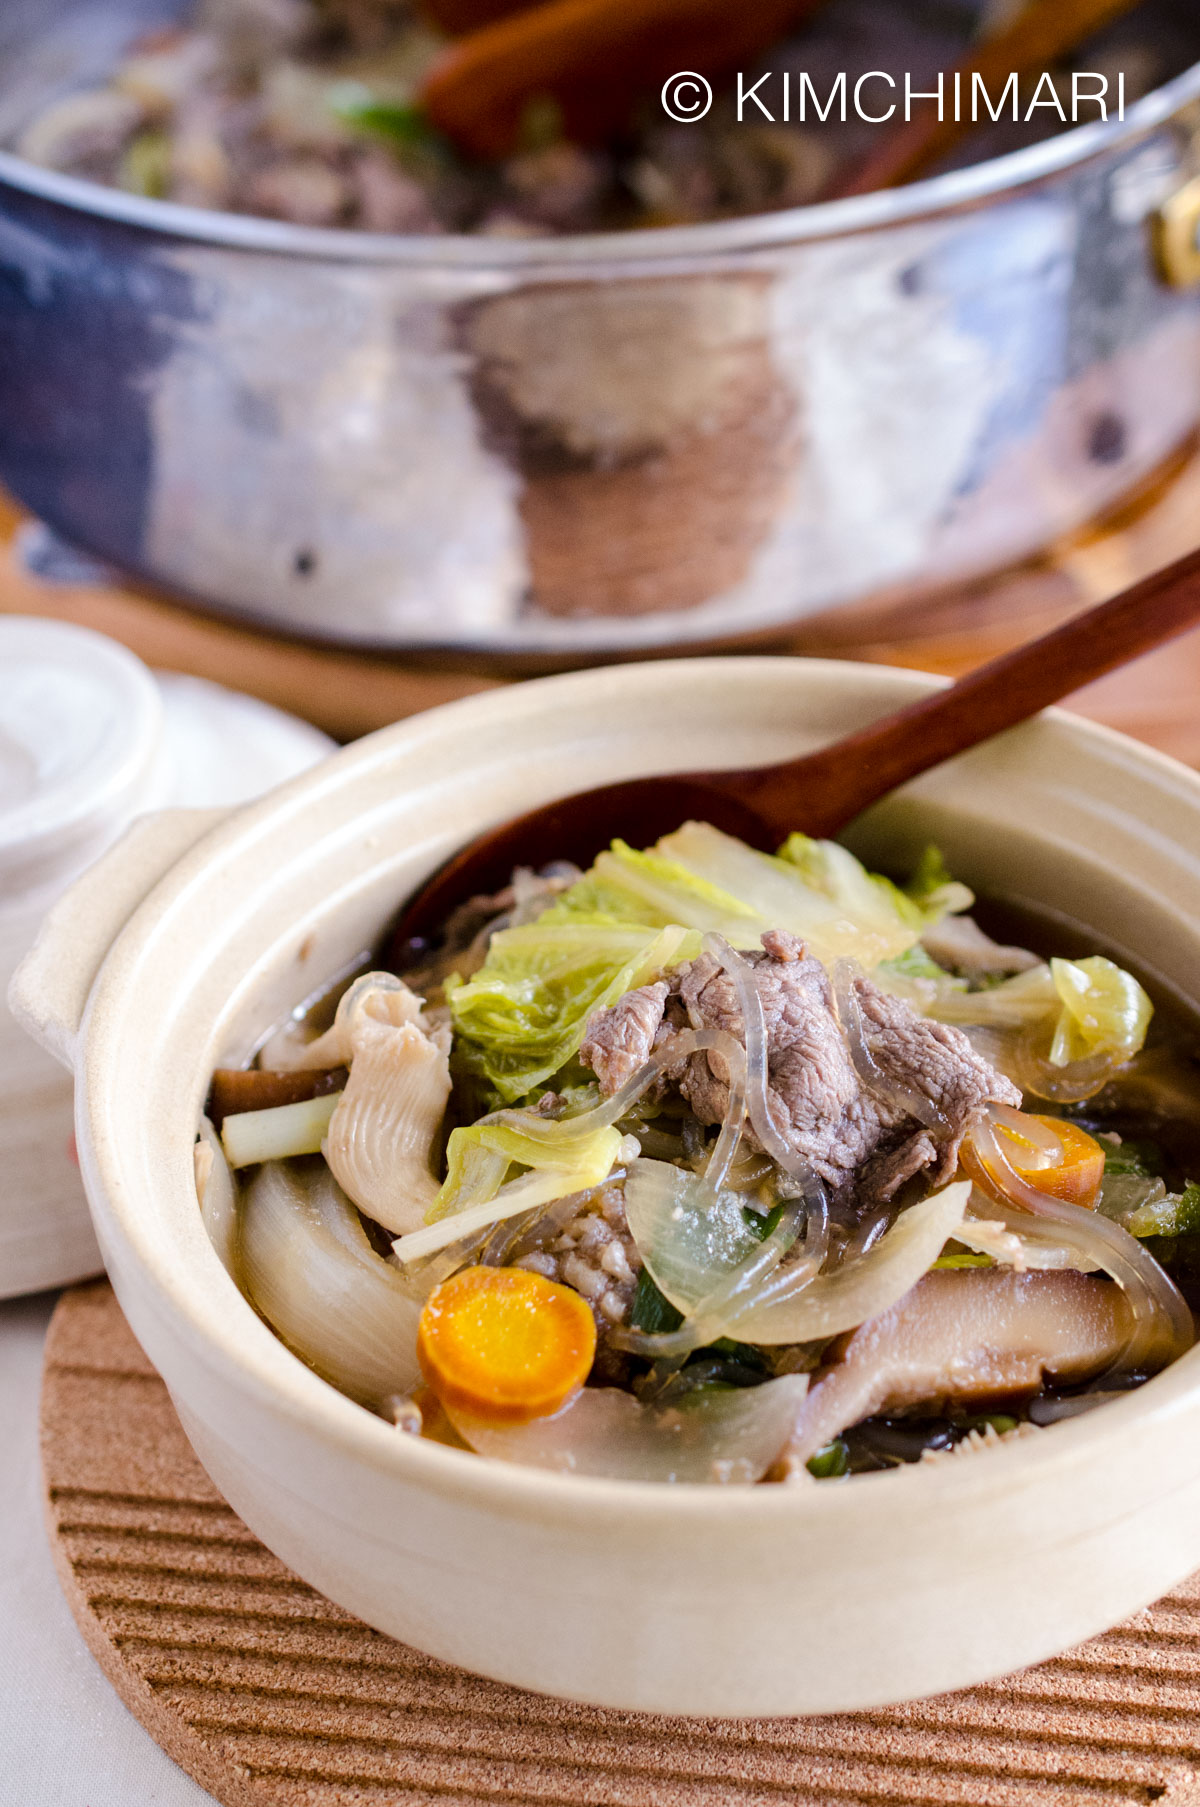 Bulgogi Hot Pot Jeongol with Glass Noodles and Vegetables